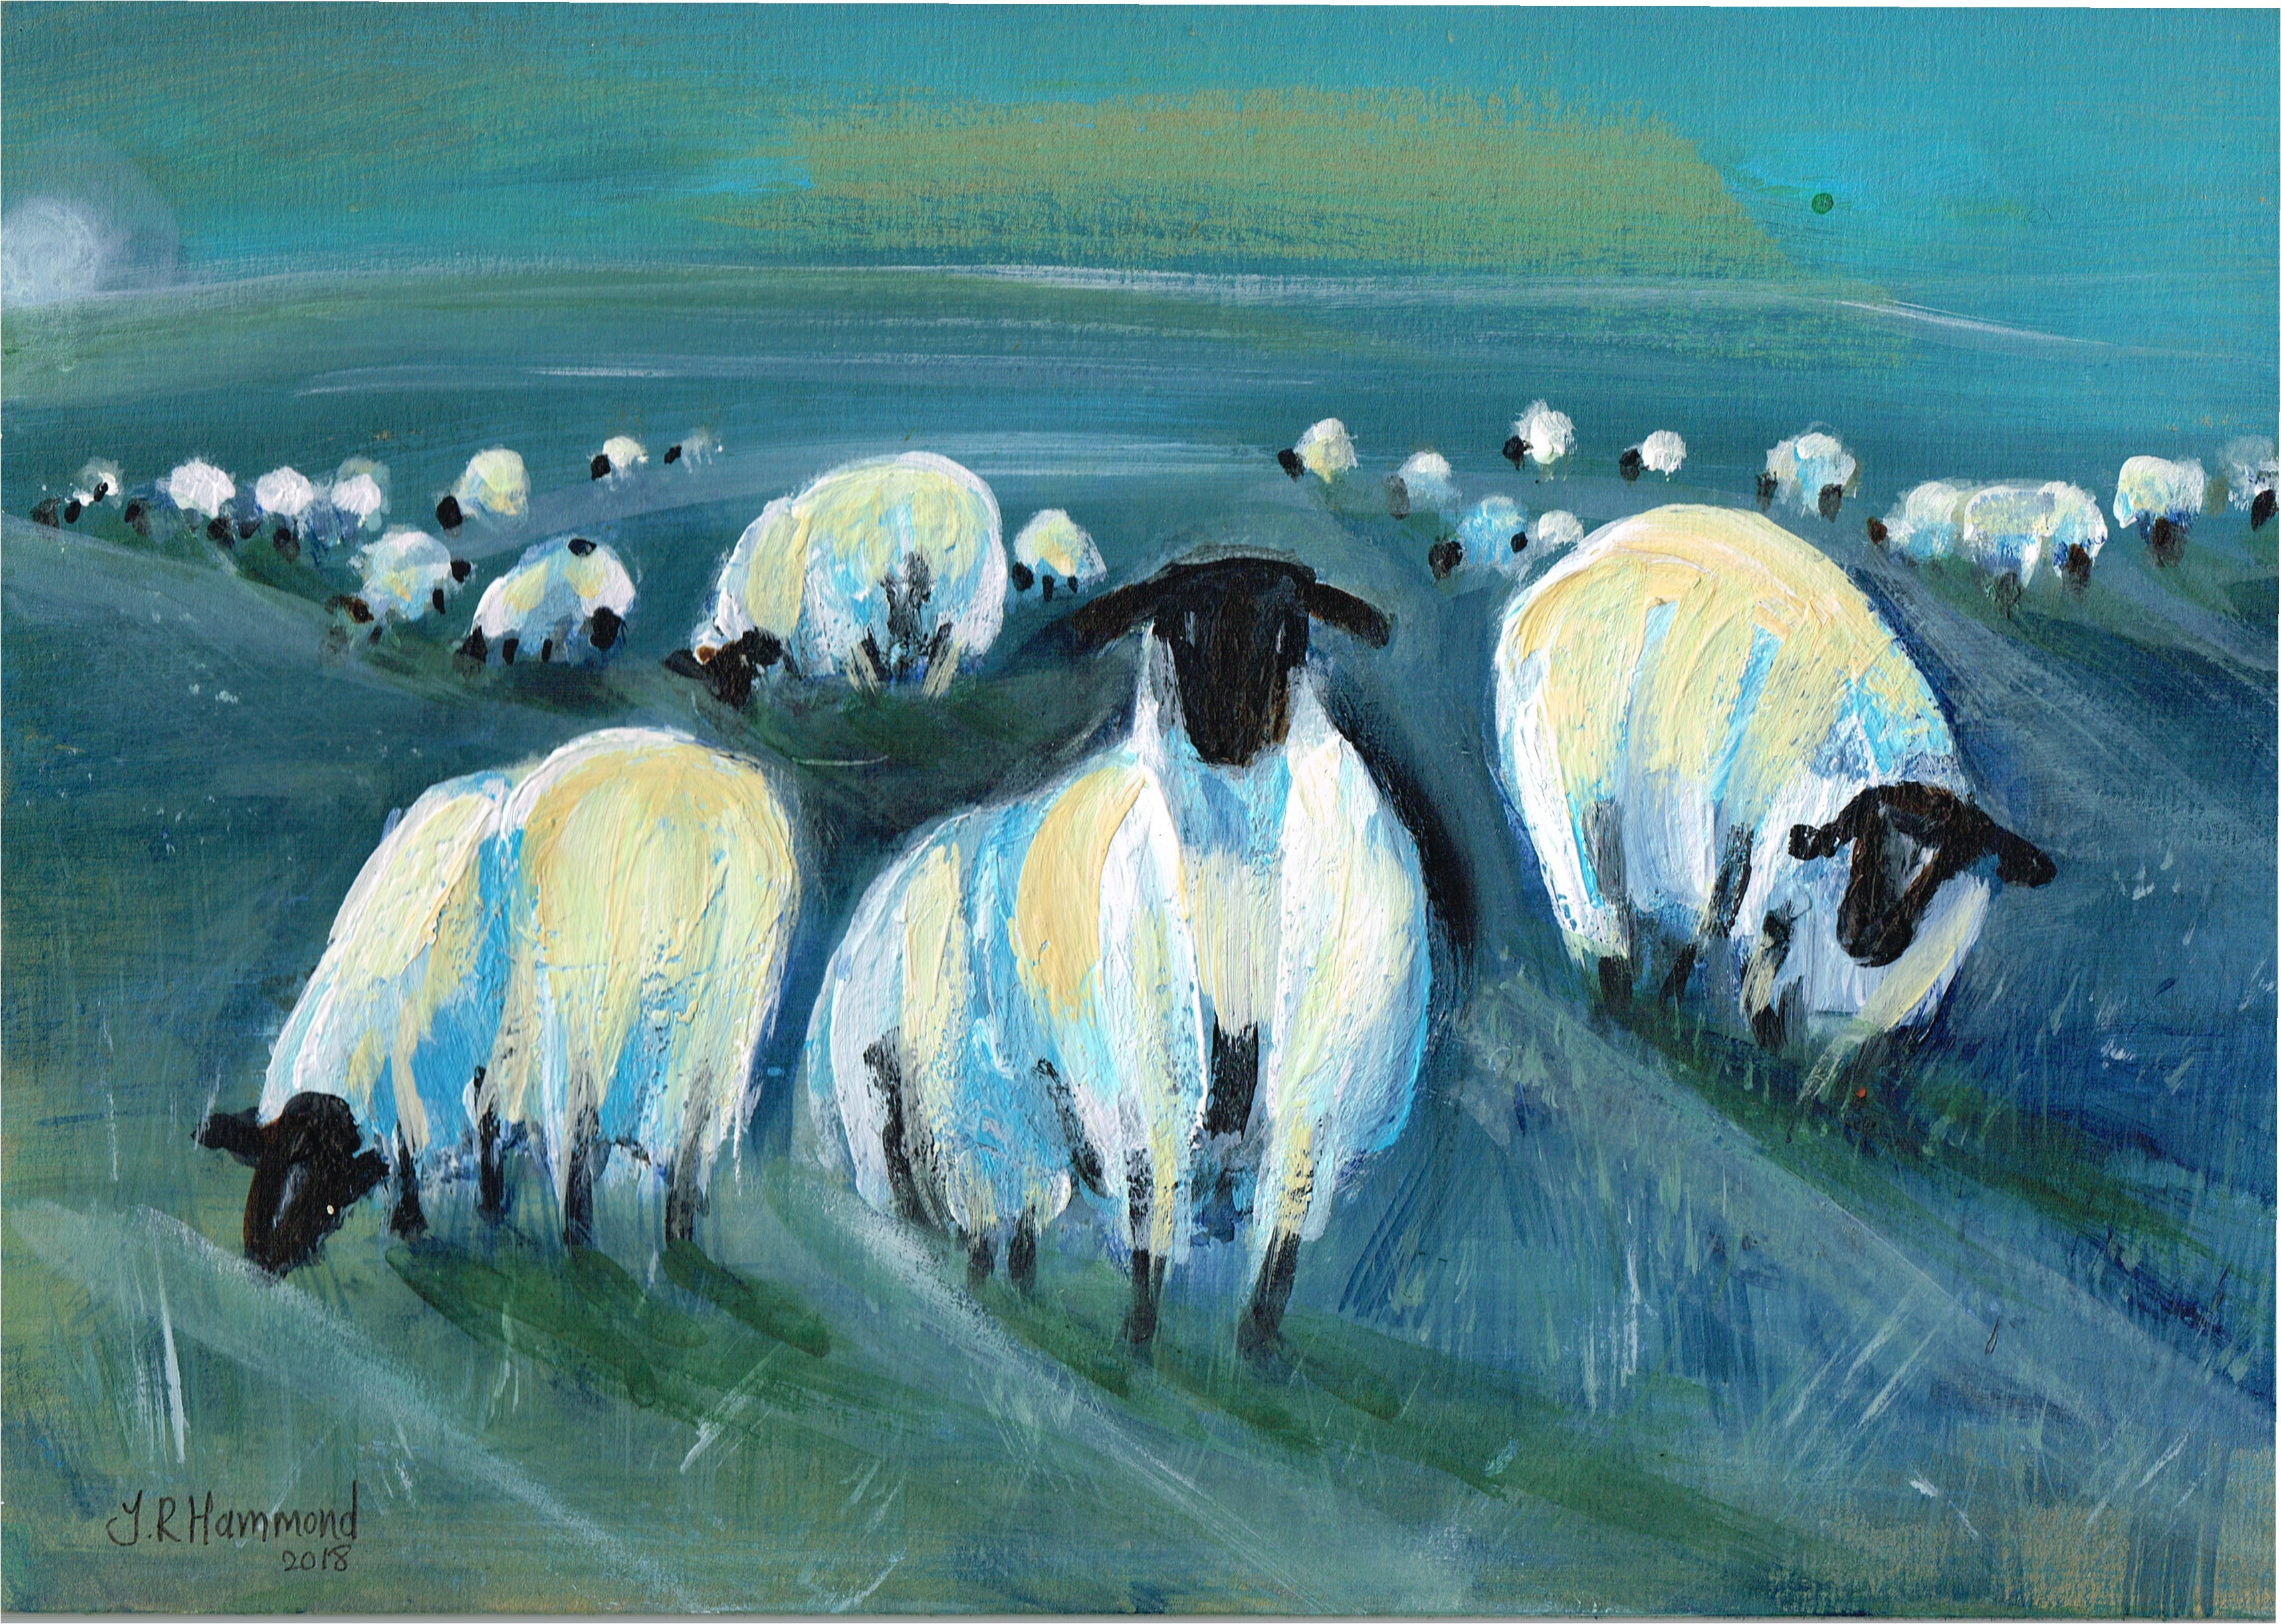 At Night I Dream of Acrylic Sheep Painting - Four (sold)  Smart Deco Homeware Lighting and Art by Jacqueline hammond